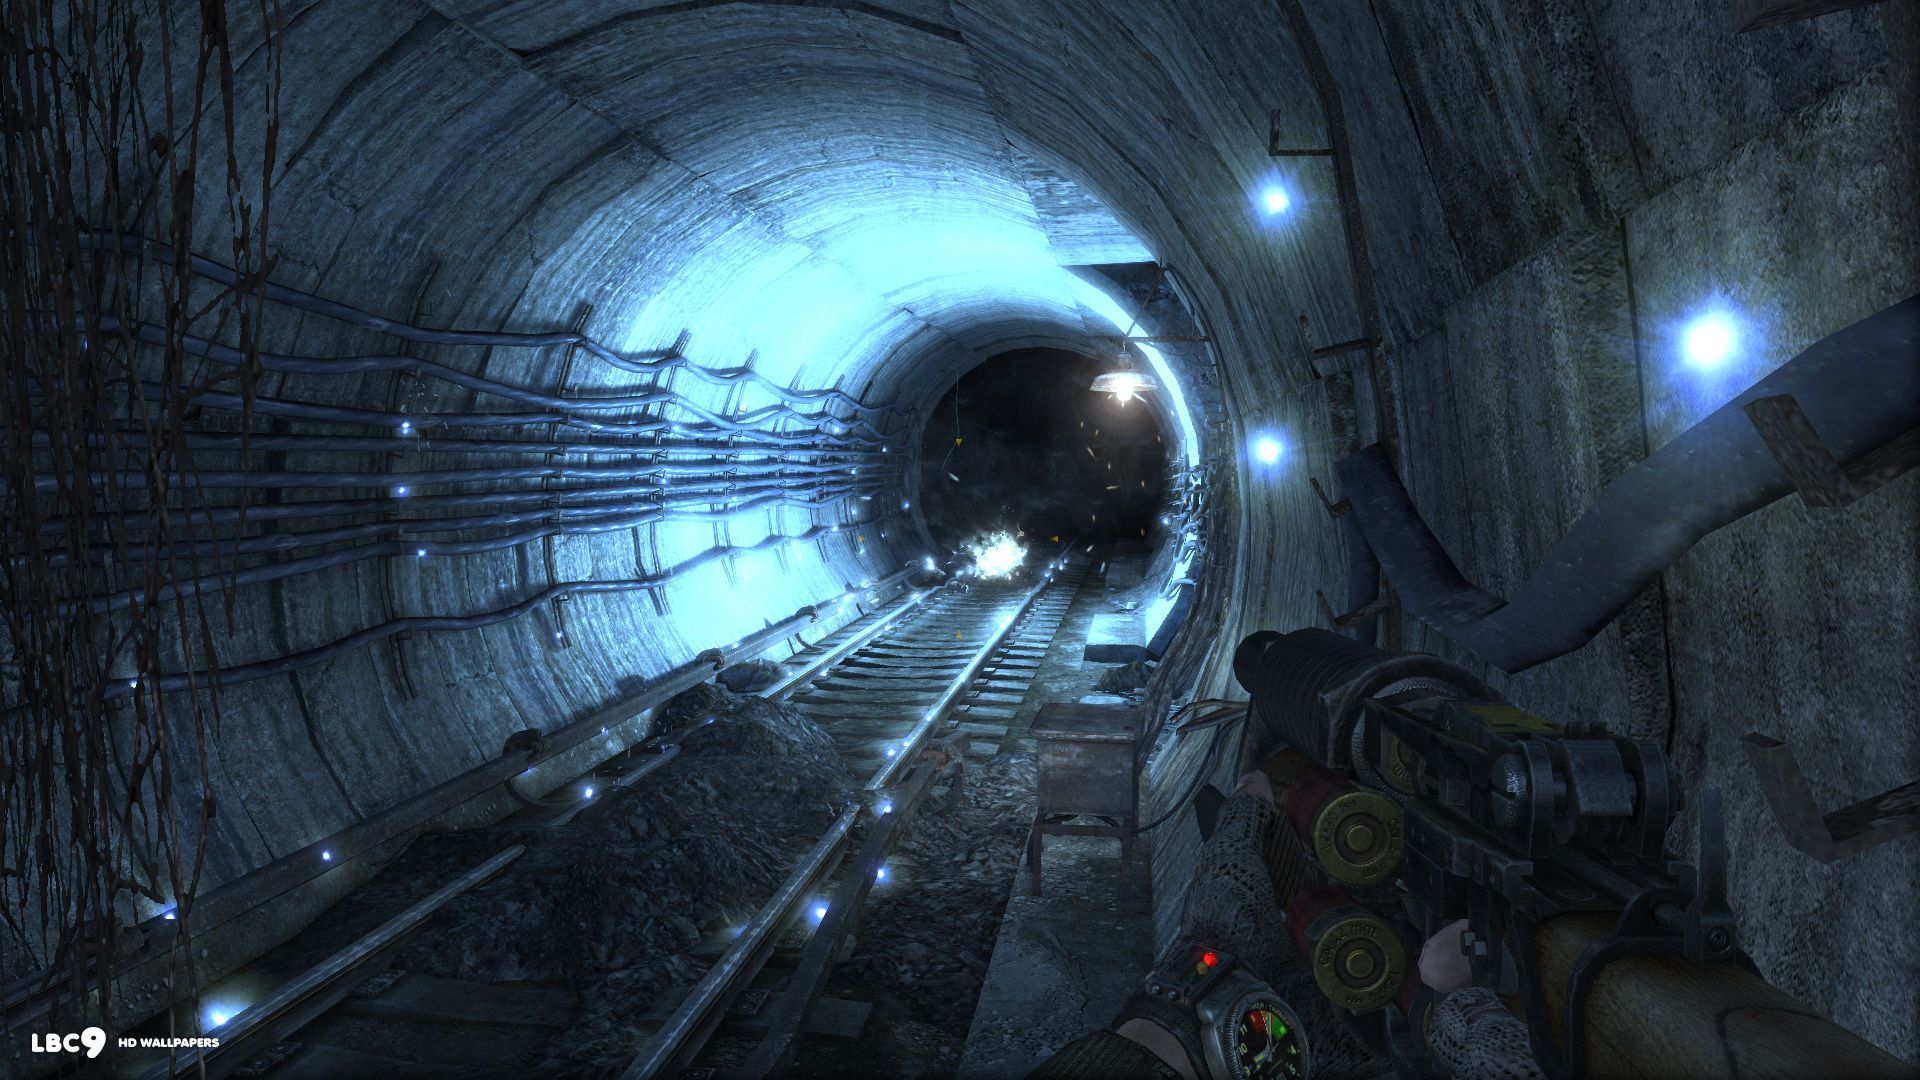 1920x1080 Metro Exodus Wallpaper Background Image View Download Comment And Rate Wallpaper Abyss Metro 2033 Metro Last Light Metro